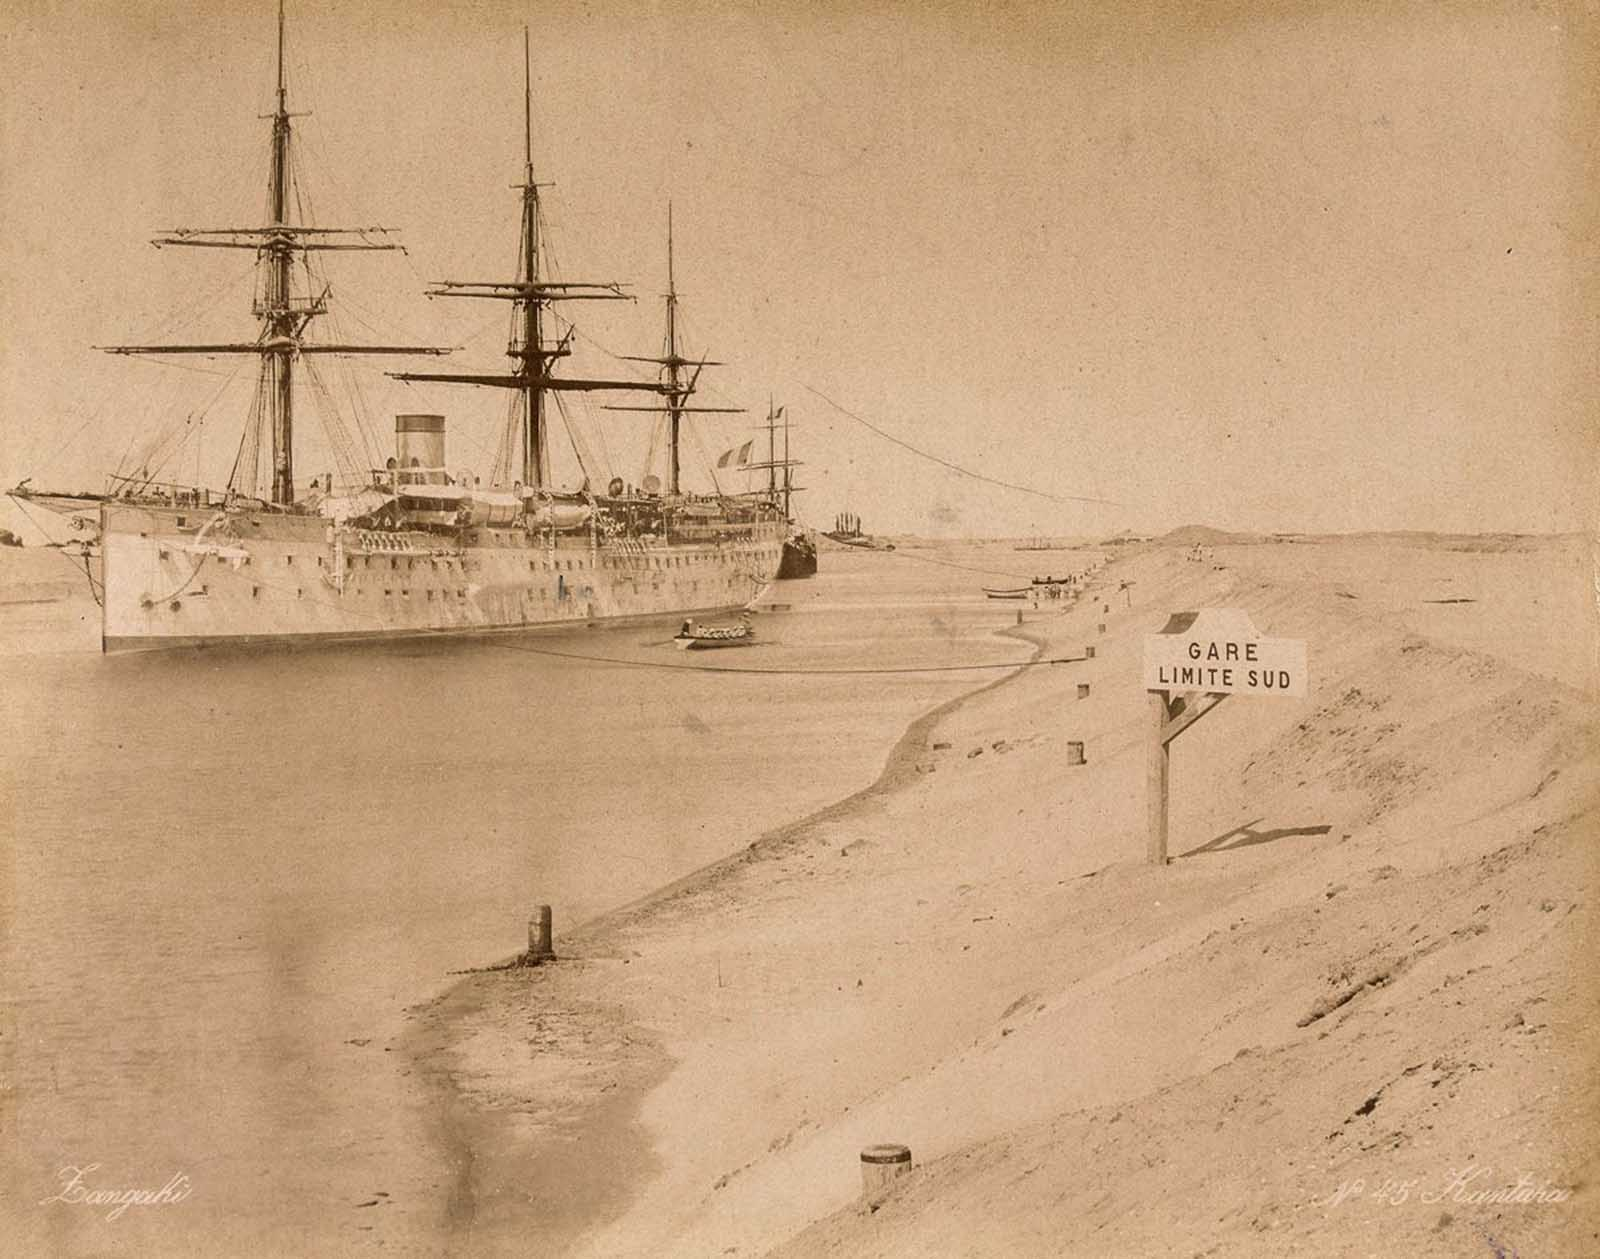 A ship in the Suez Canal.